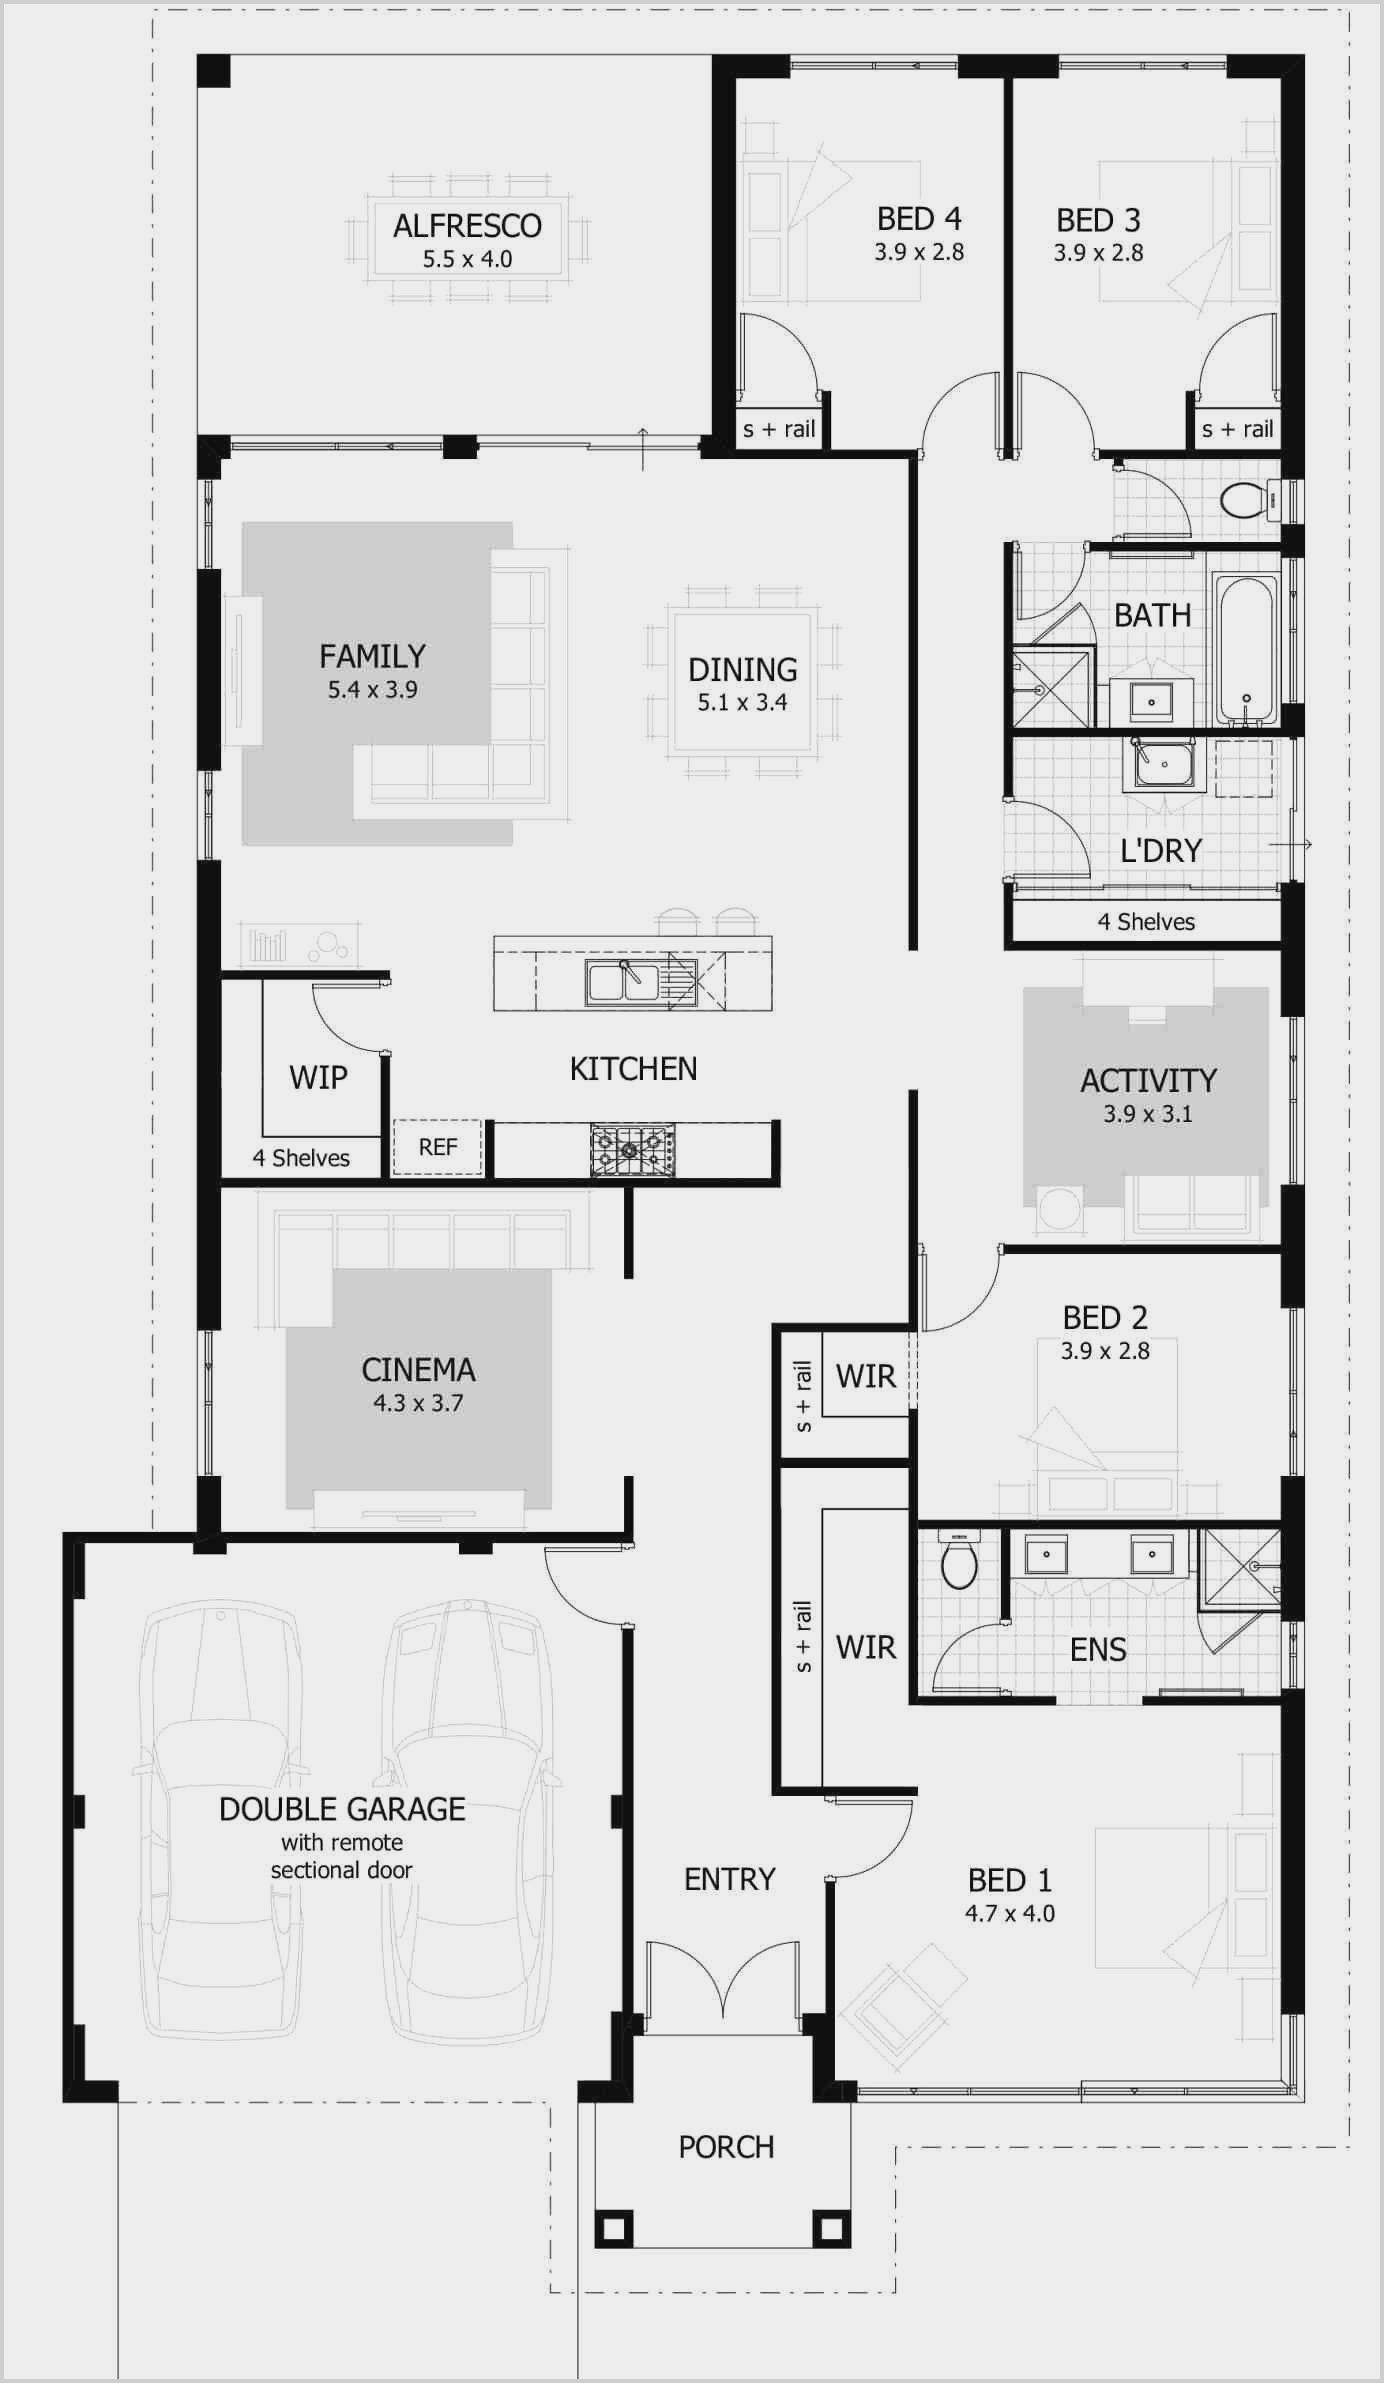 Design A 4 Bedroom House In 2020 With Images 4 Bedroom House